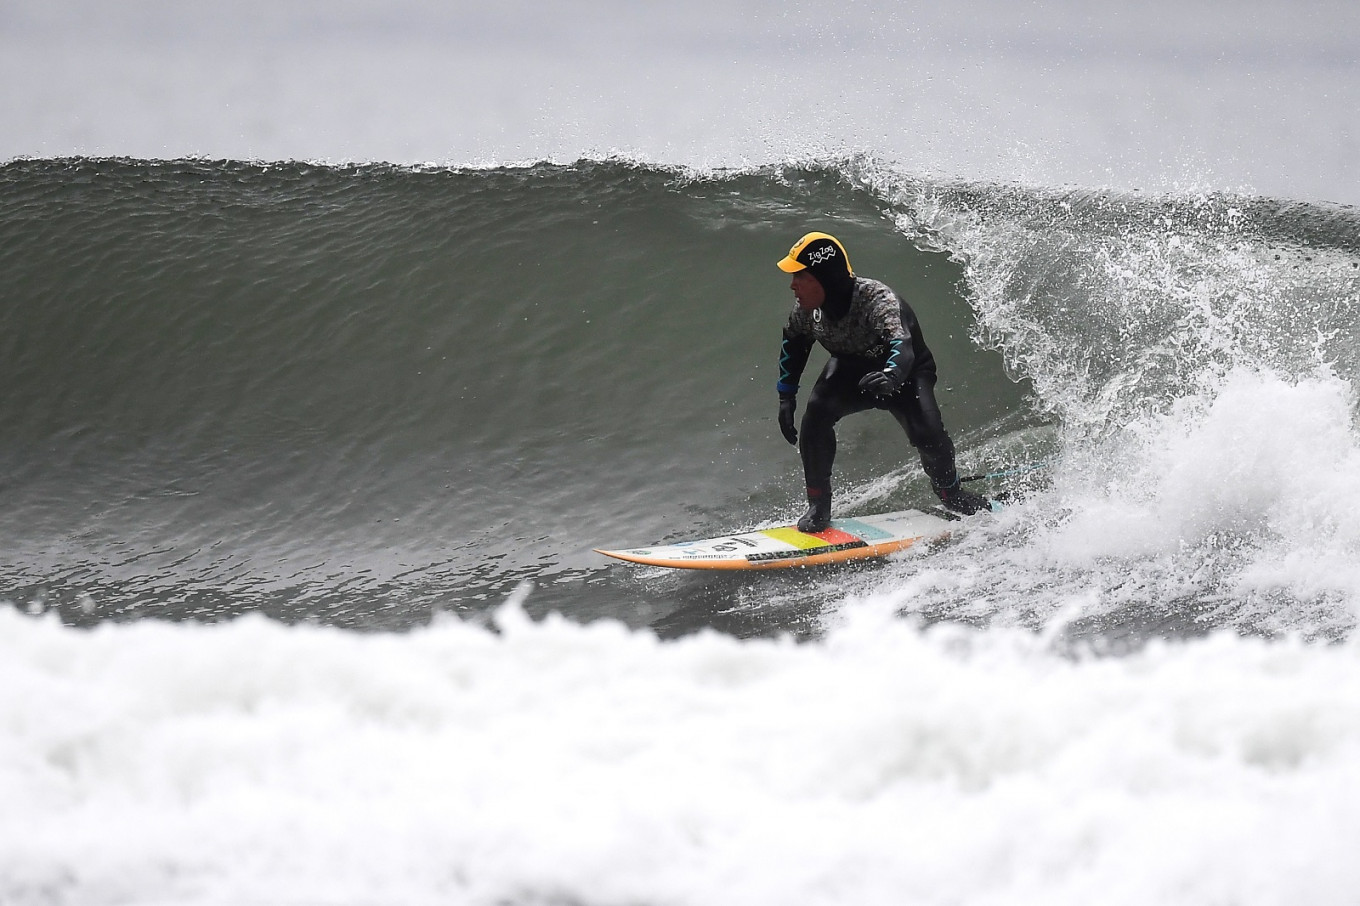 Surf's up in Fukushima 9 years after nuclear accident